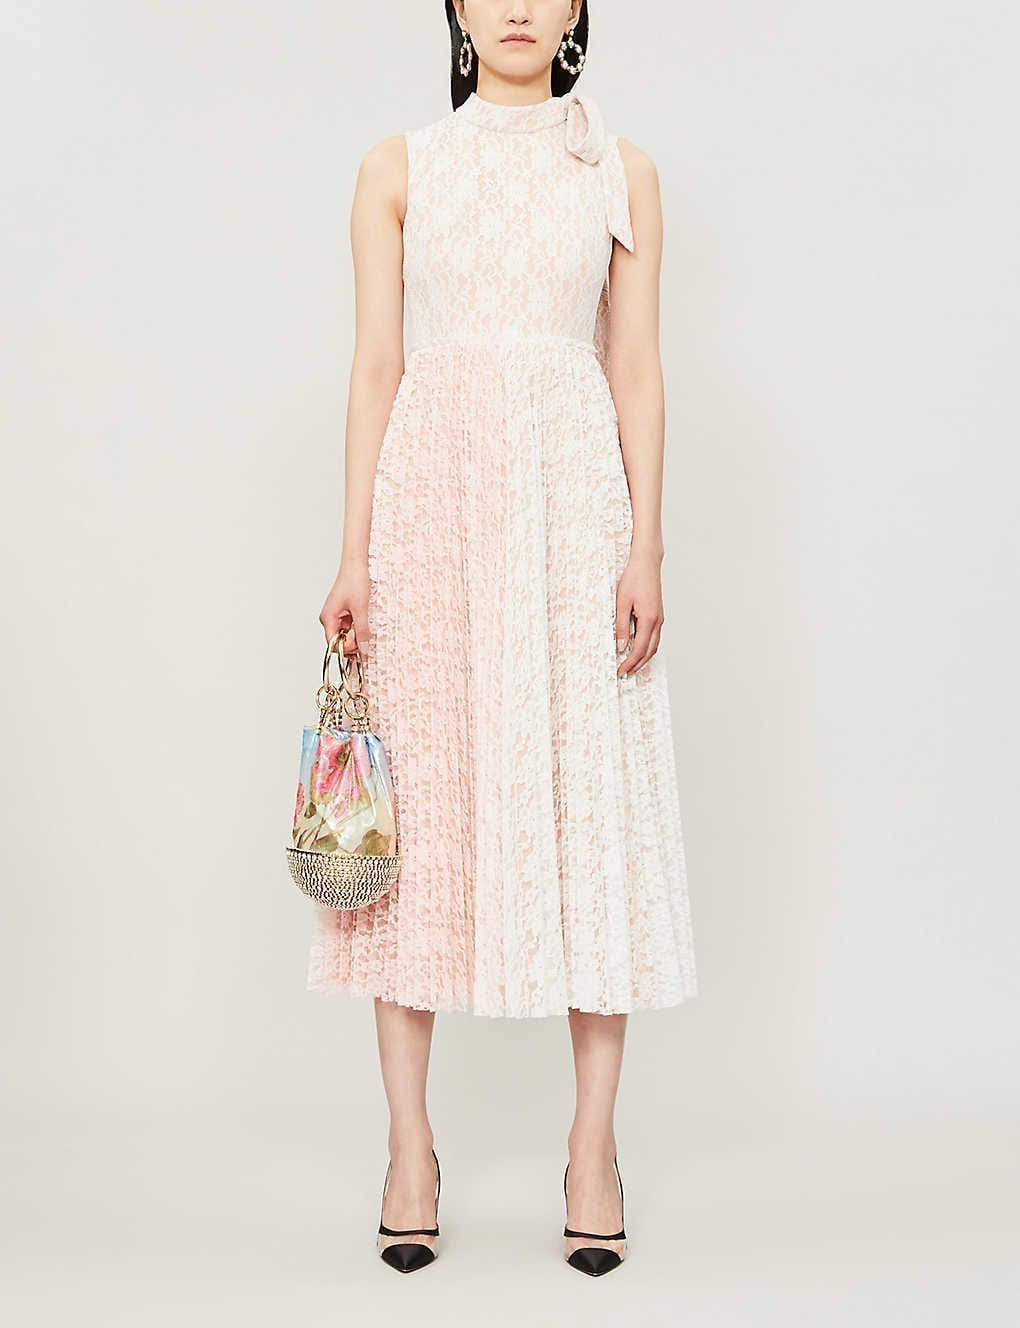 UISHAN ZHANG Melissa Tied-Neck Pleated Lace Midi Pink Dress